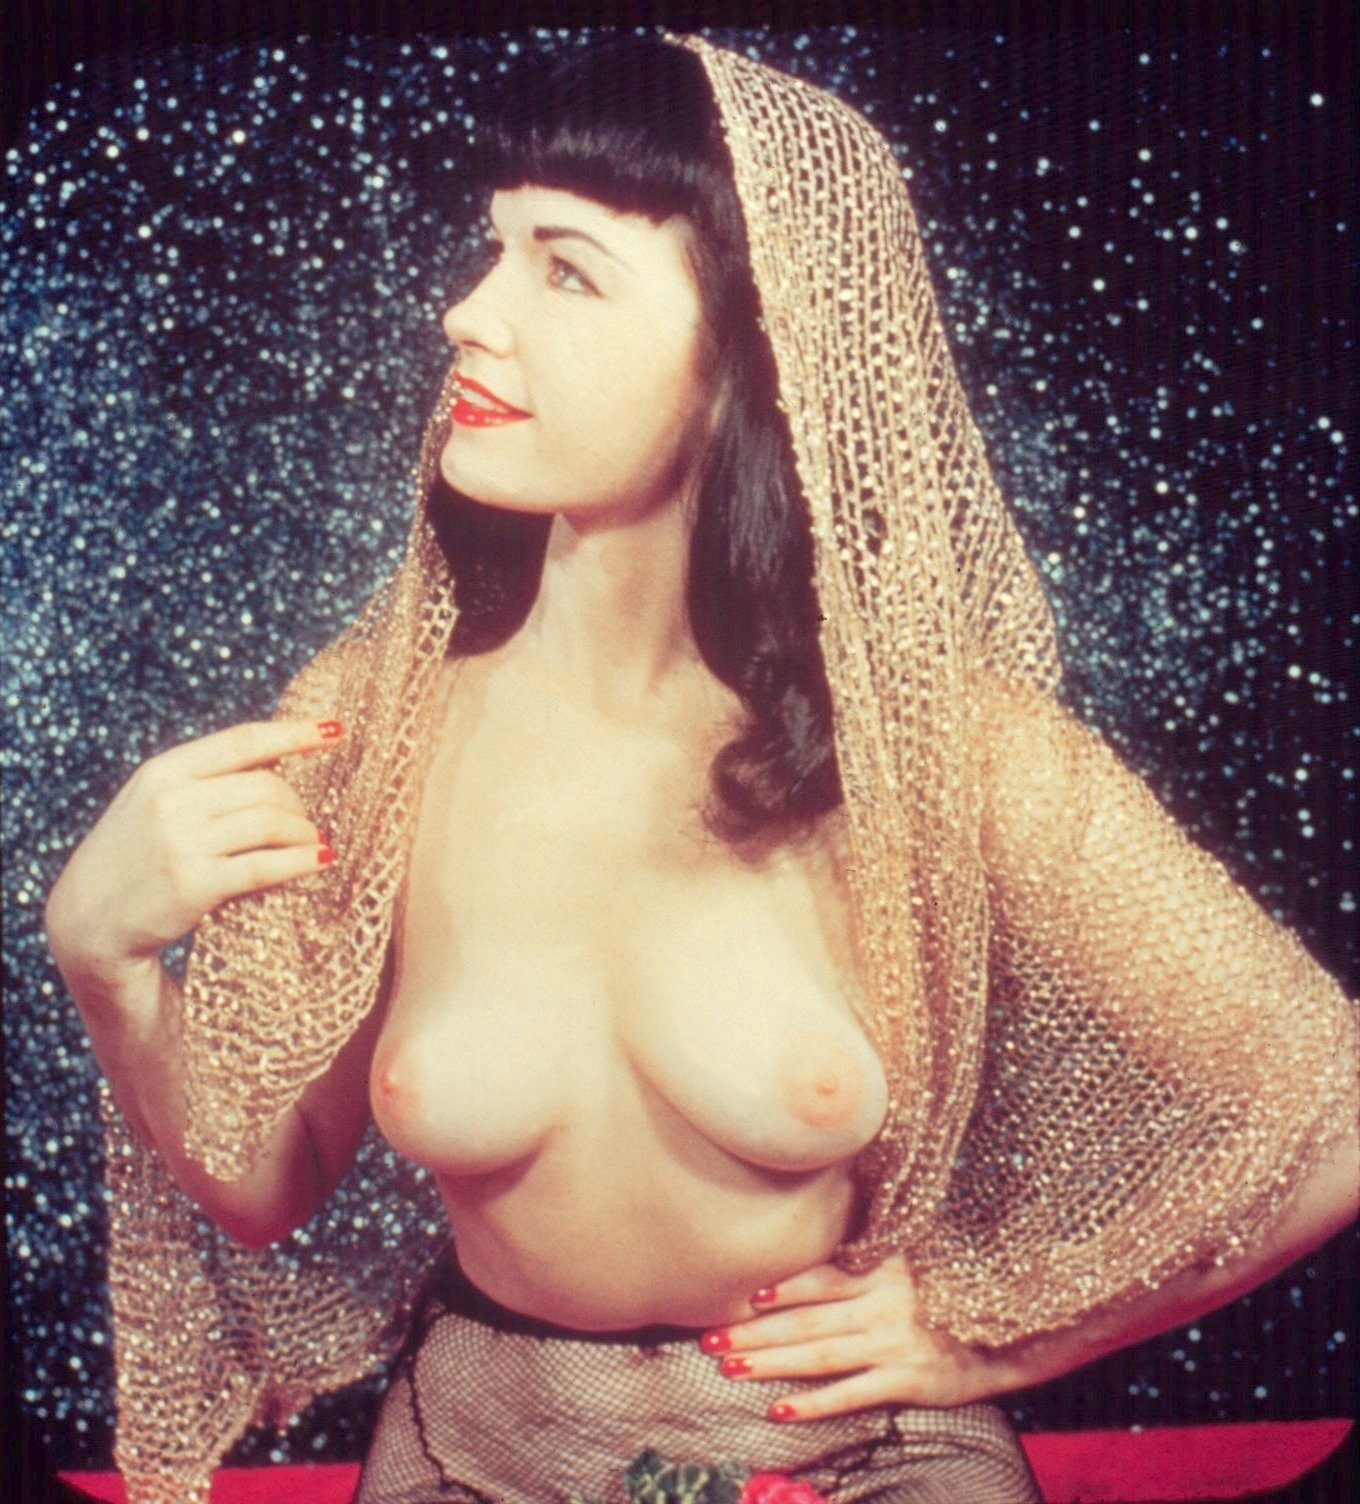 Bettie page tits, big boobed naked chicks getting fucked